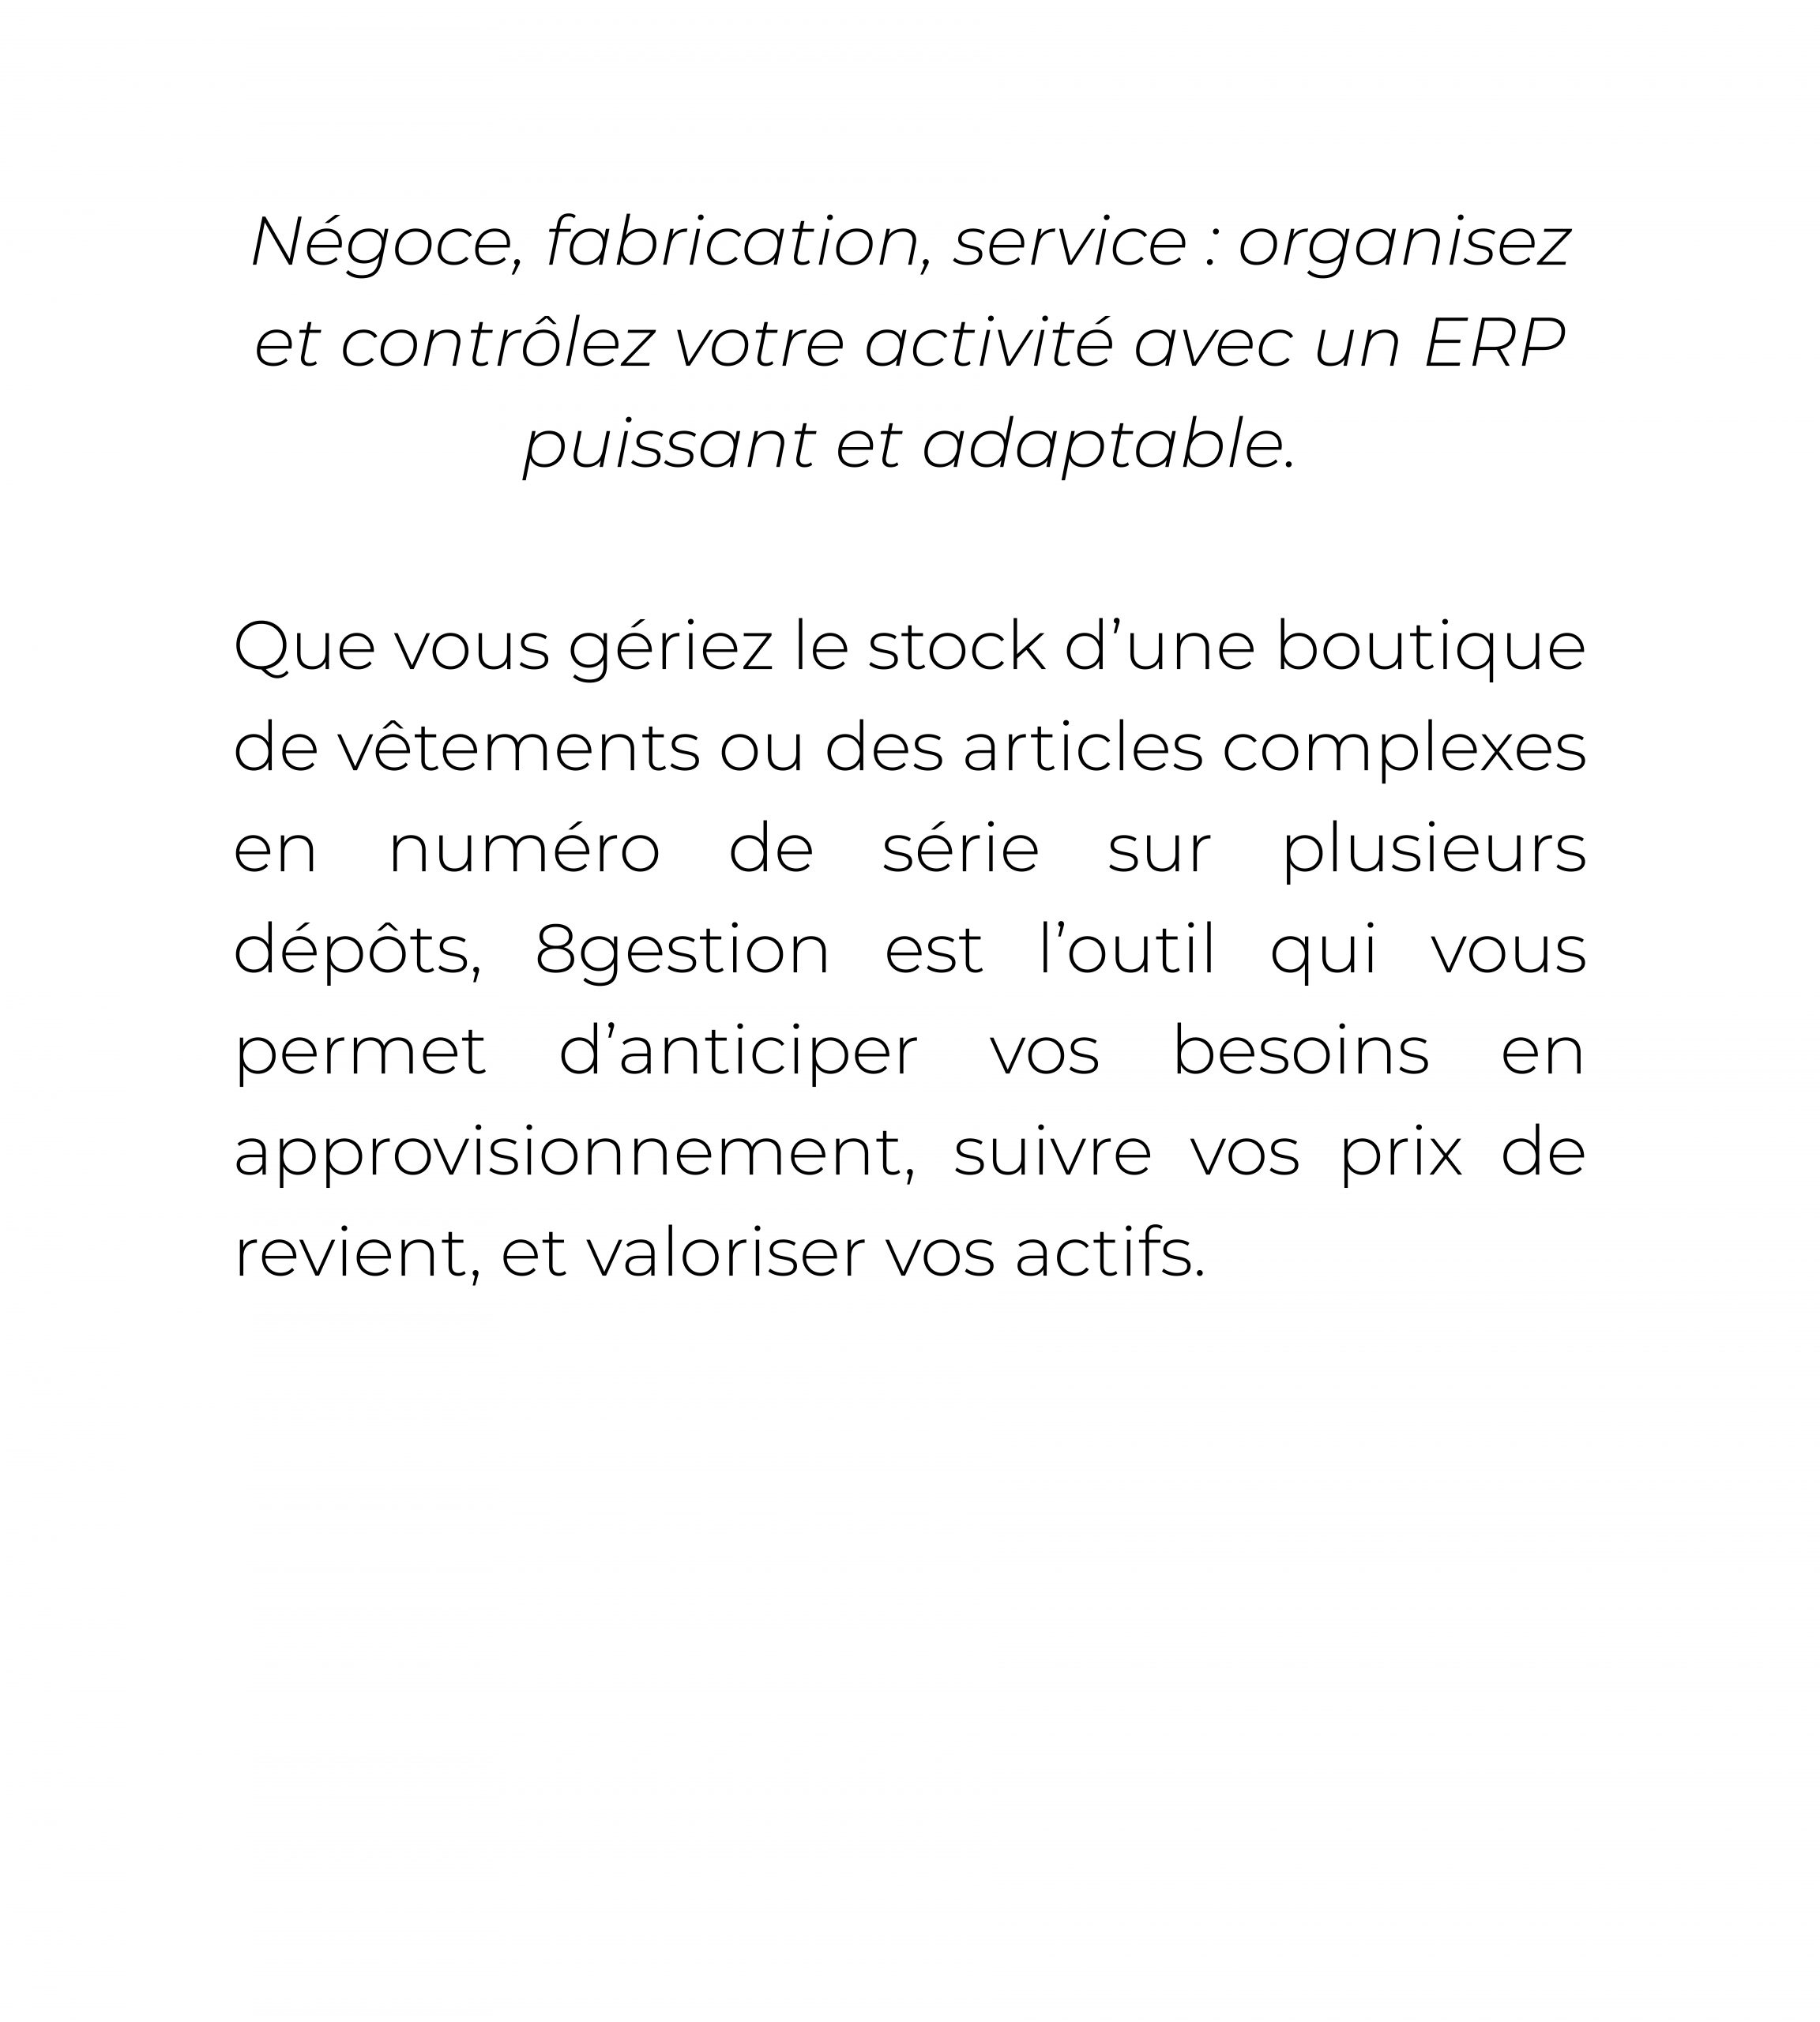 8gestion texte